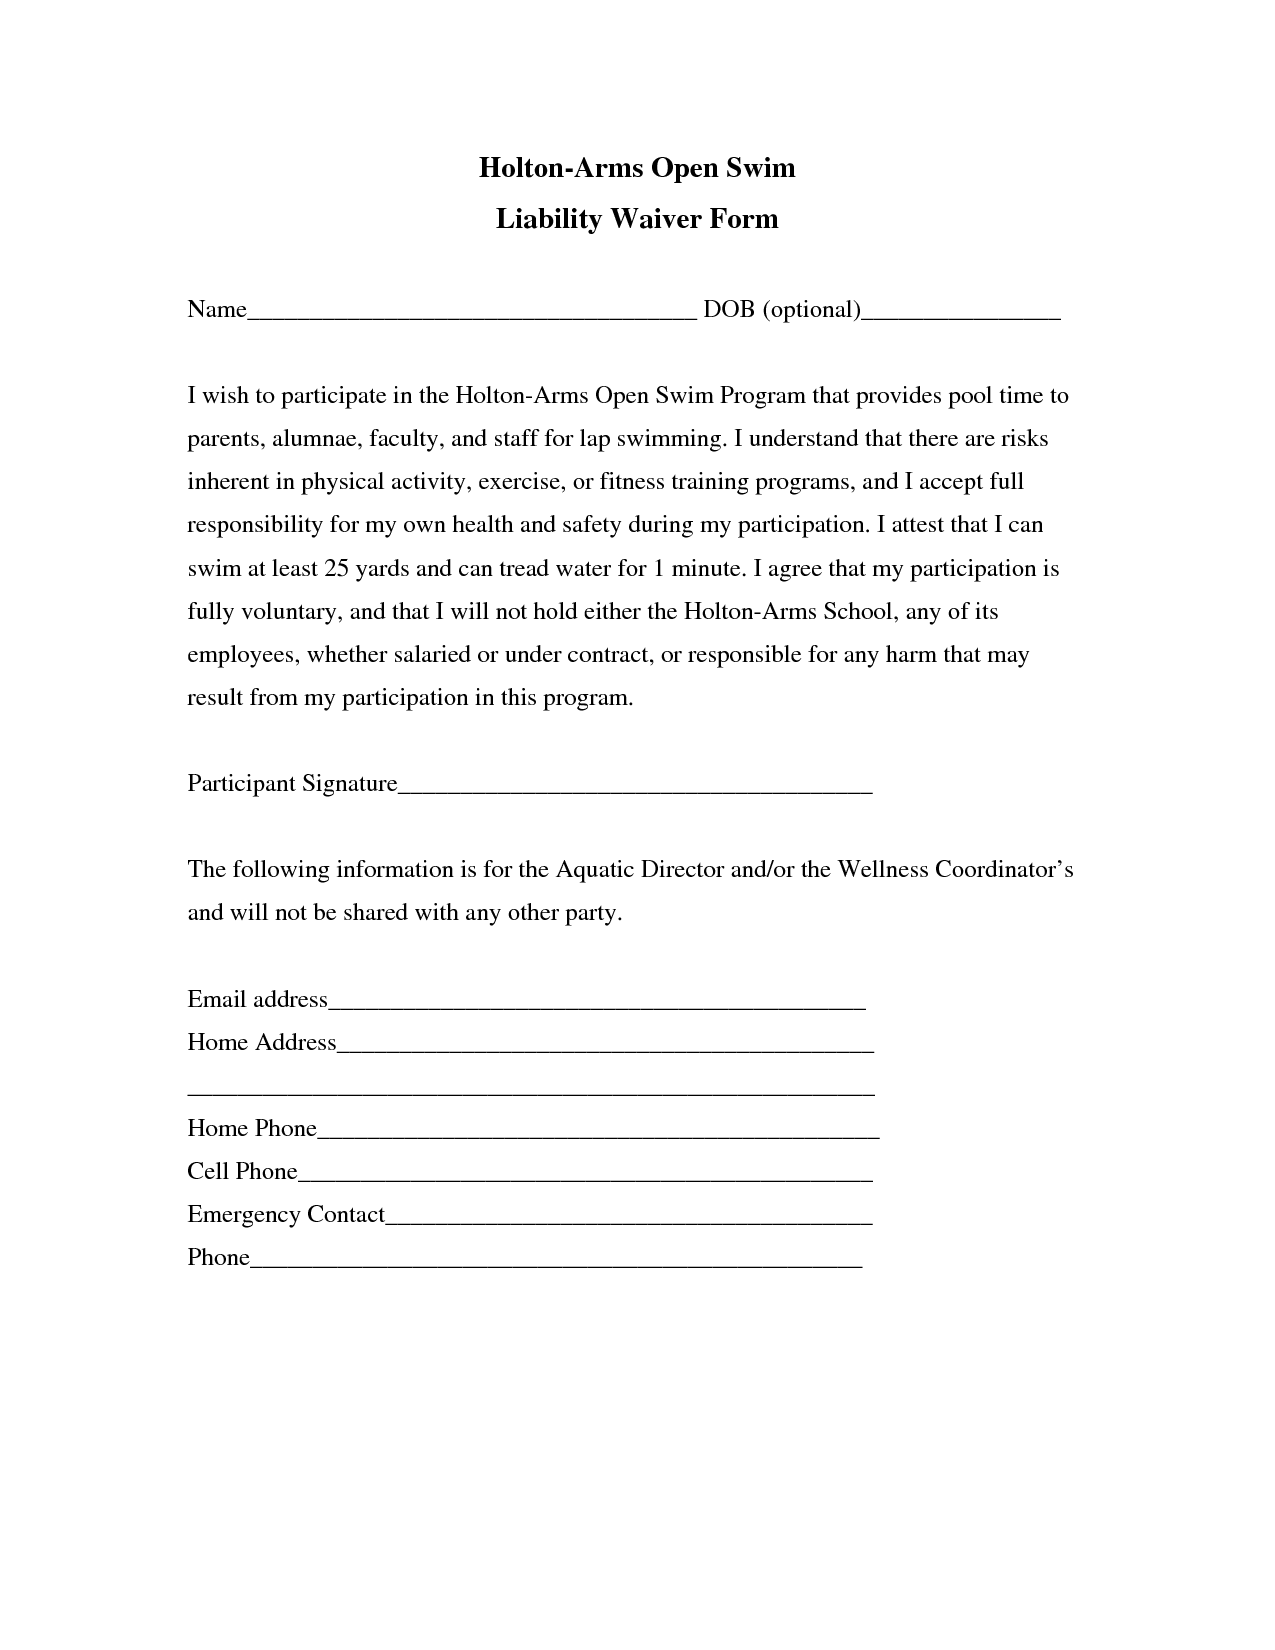 Liability insurance liability insurance waiver template for Property disclaimer template